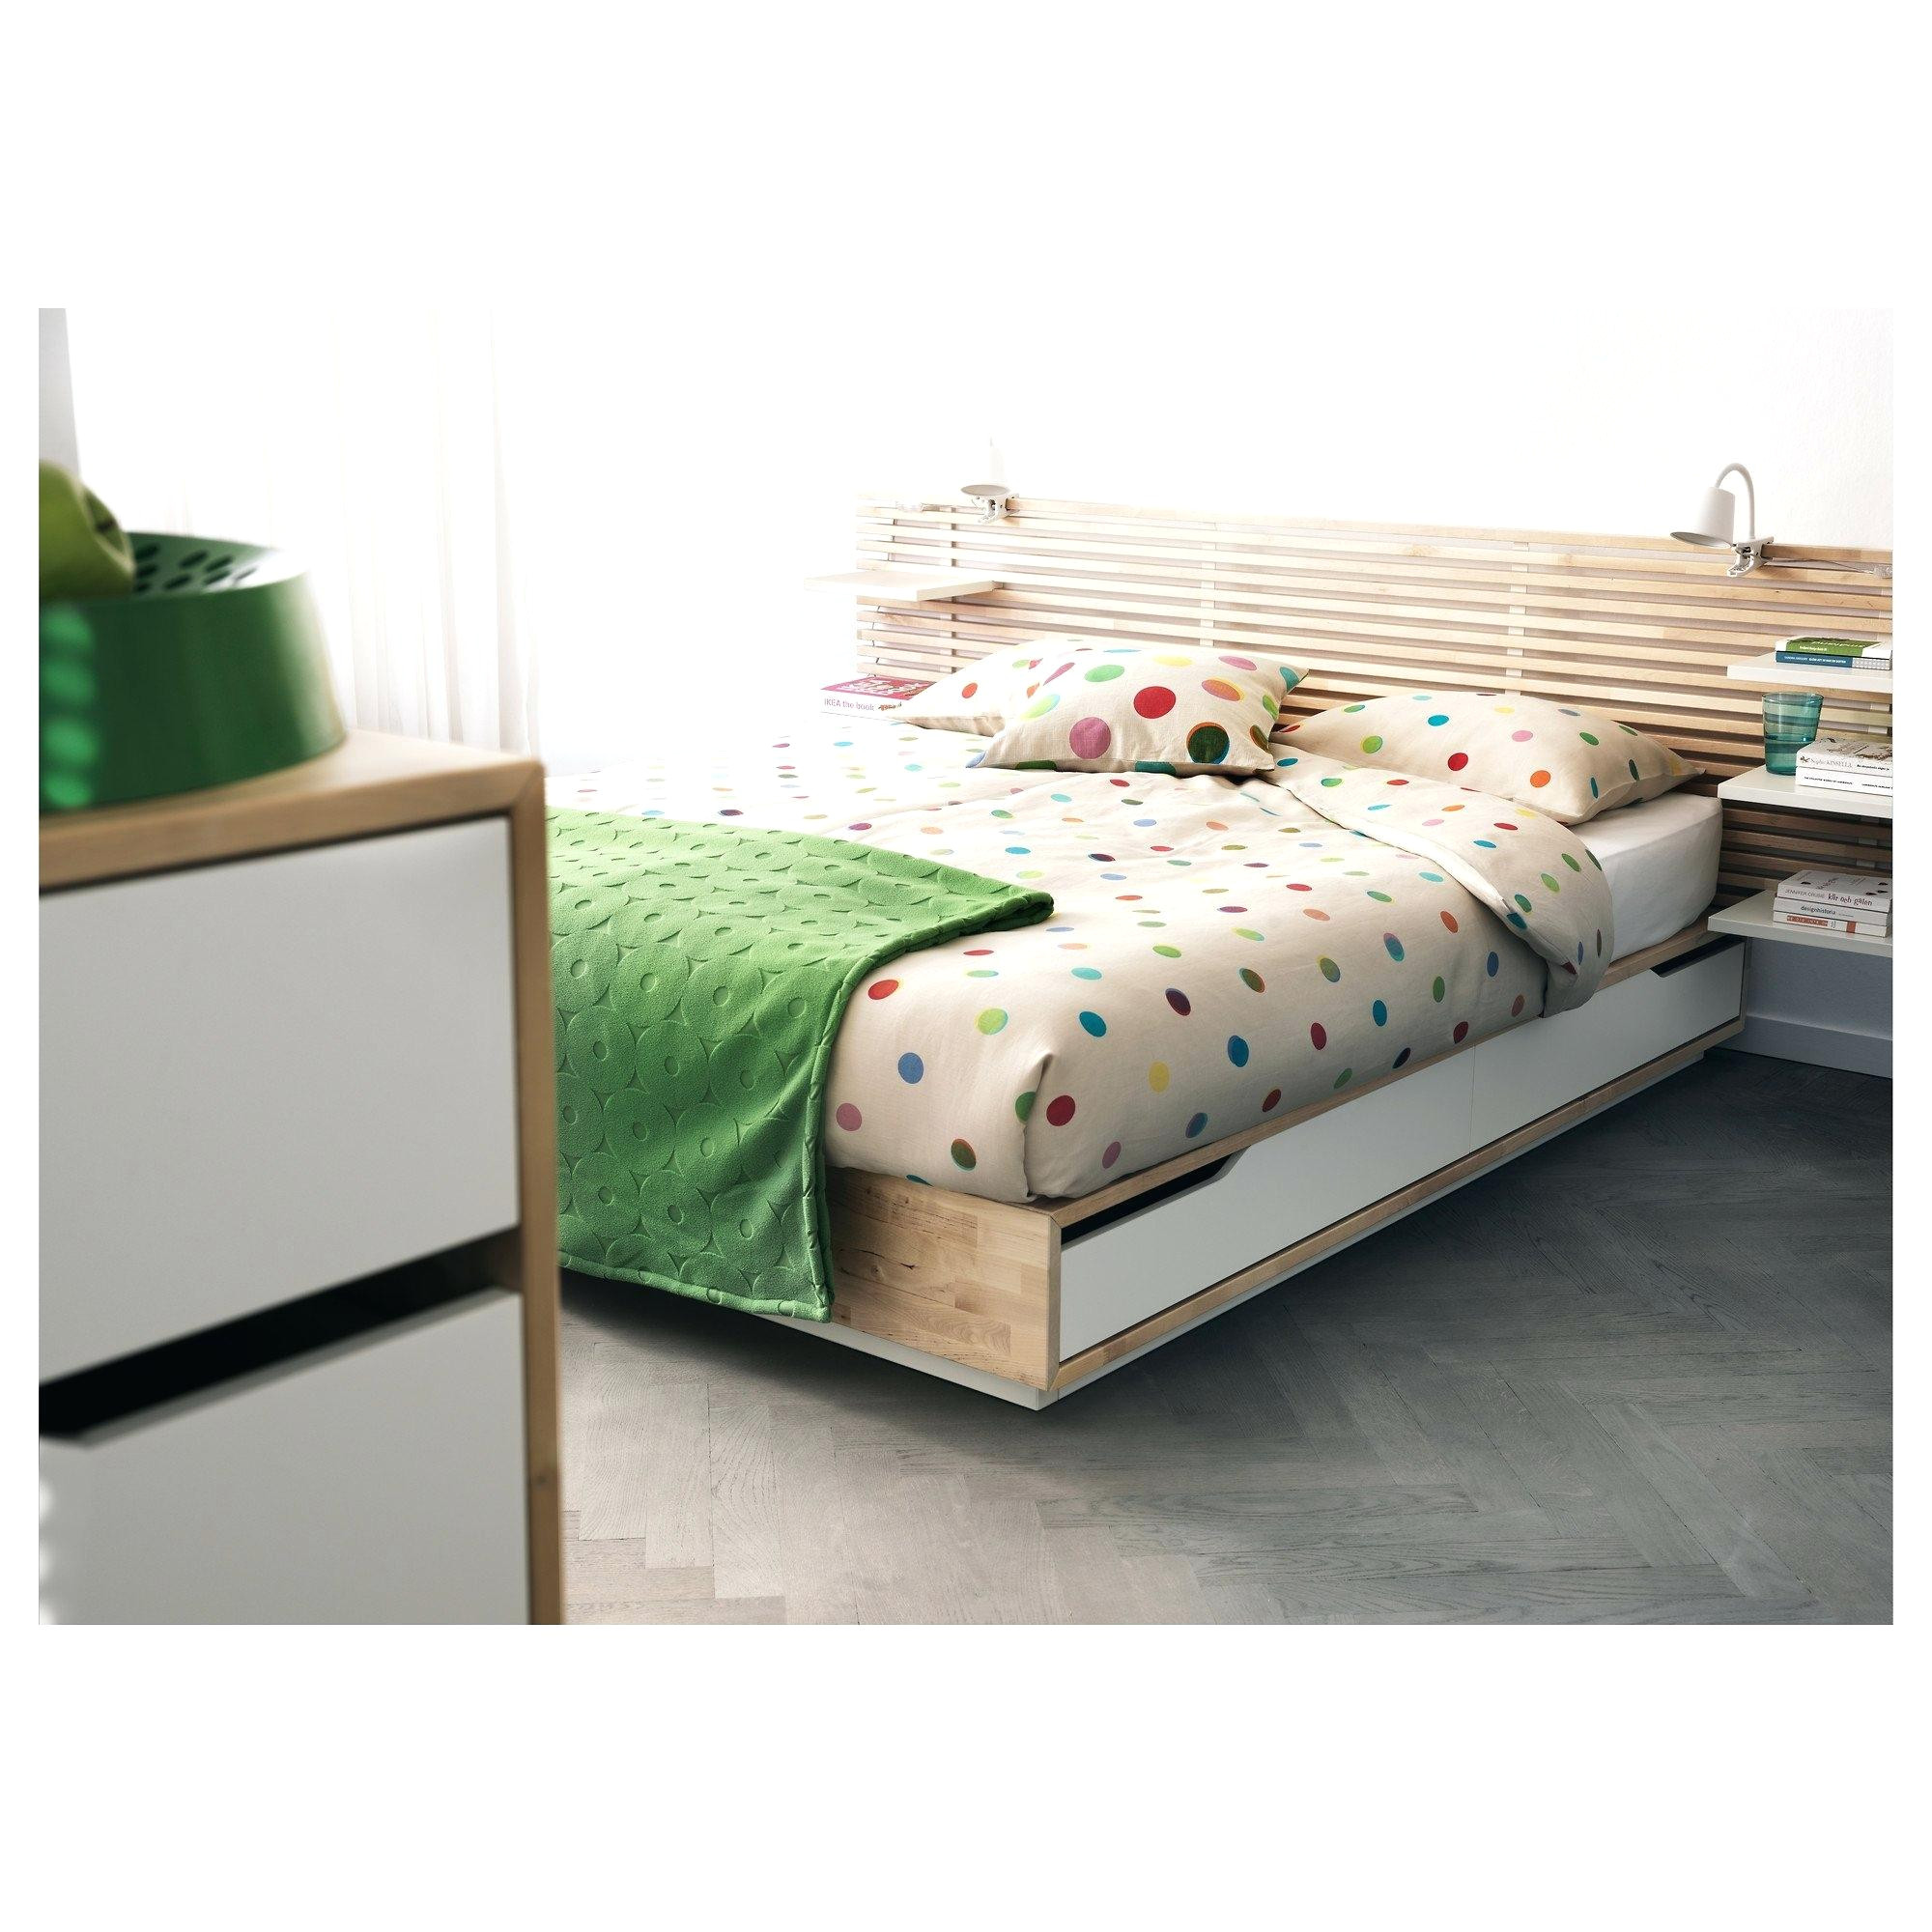 Ikea Malm Storage Bed Review Mandal Ikea Used Bed Frame with Storage Birch White Bett Mandal Bett